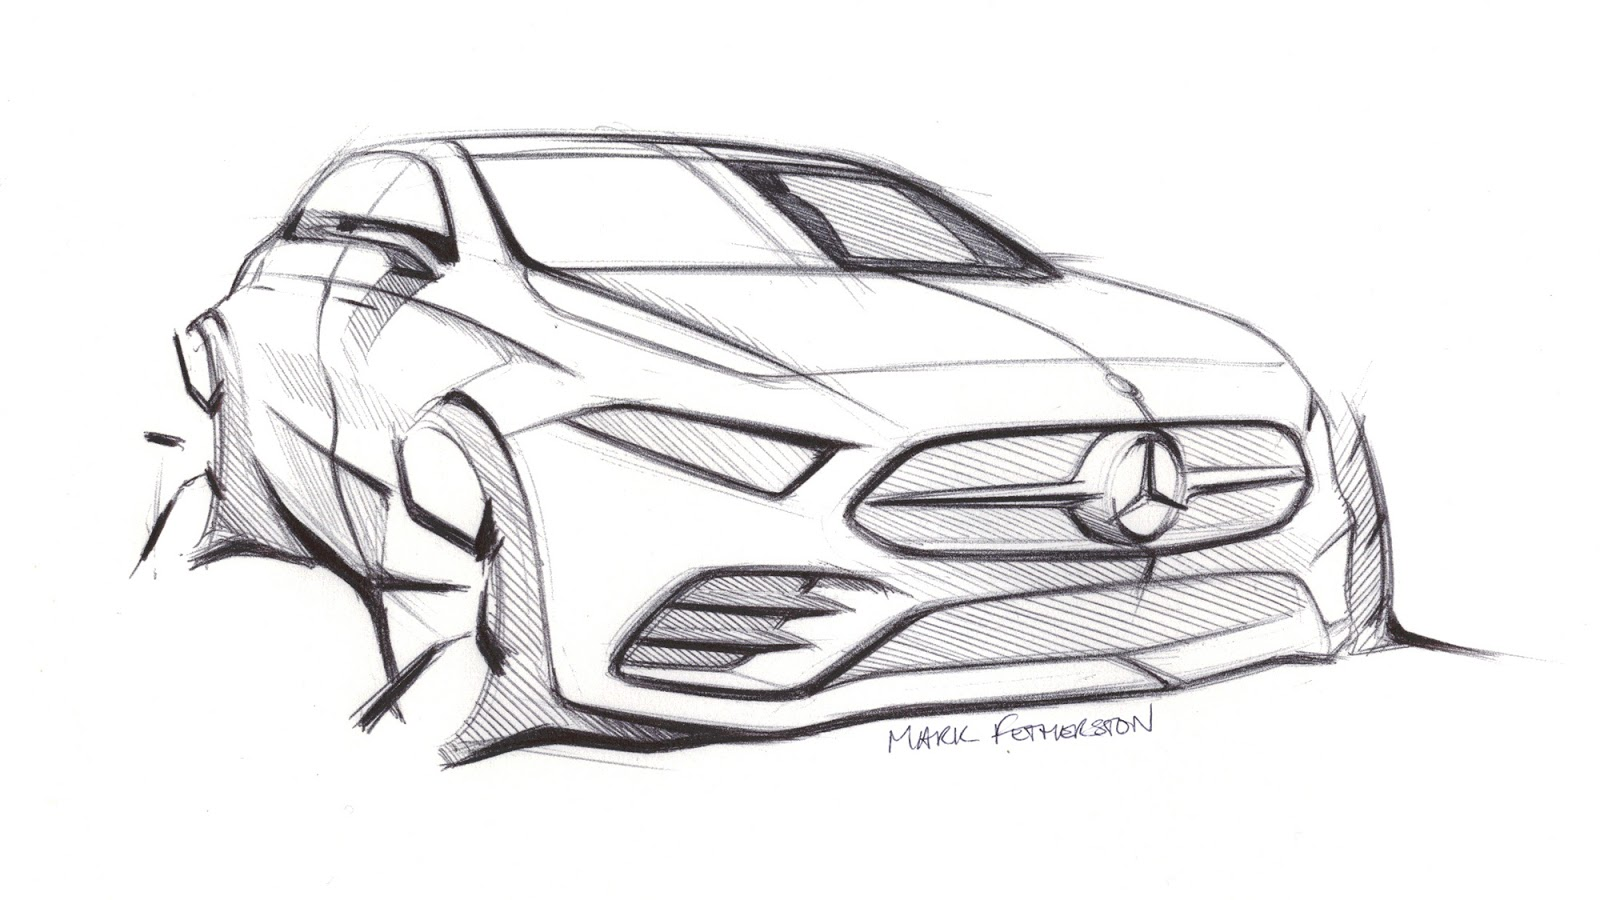 Mercedes A-Class 2018 W177 sketch by Mark Fetherston